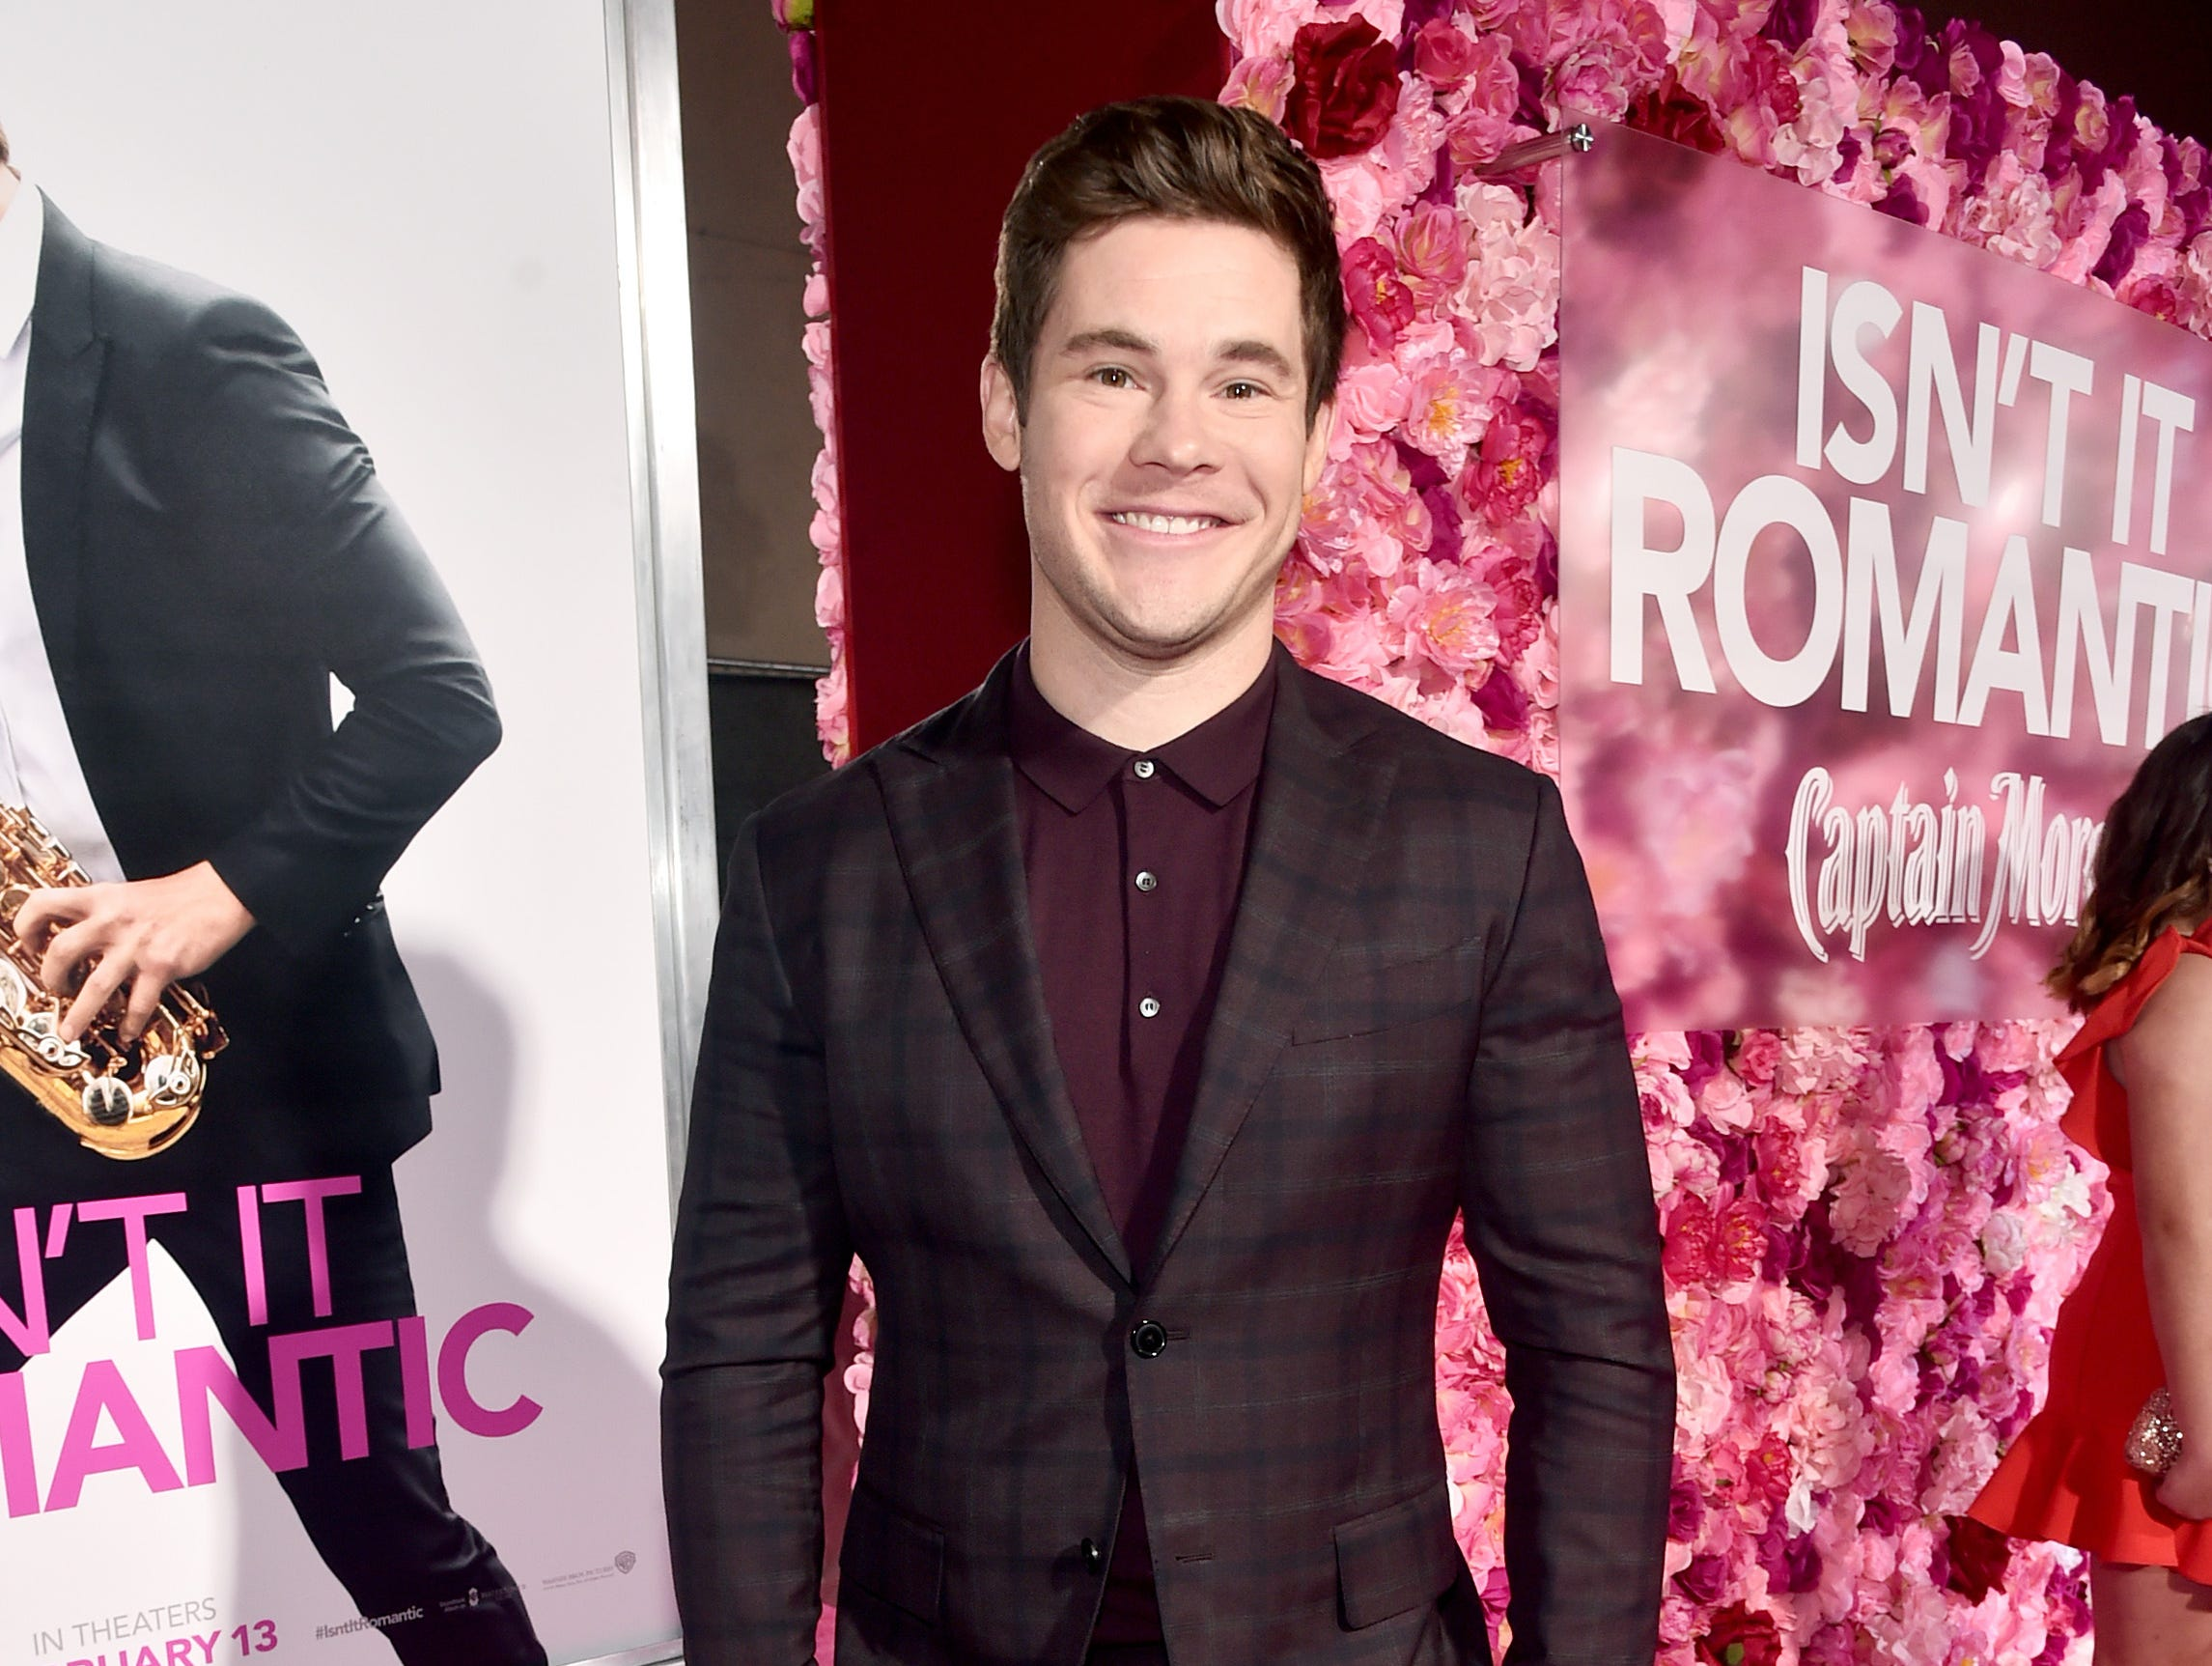 "LOS ANGELES, CALIFORNIA - FEBRUARY 11: Adam DeVine attends the premiere of Warner Bros. Pictures' ""Isn't It Romantic"" at The Theatre at Ace Hotel on February 11, 2019 in Los Angeles, California. (Photo by Alberto E. Rodriguez/Getty Images) ORG XMIT: 775292839 ORIG FILE ID: 1129040957"